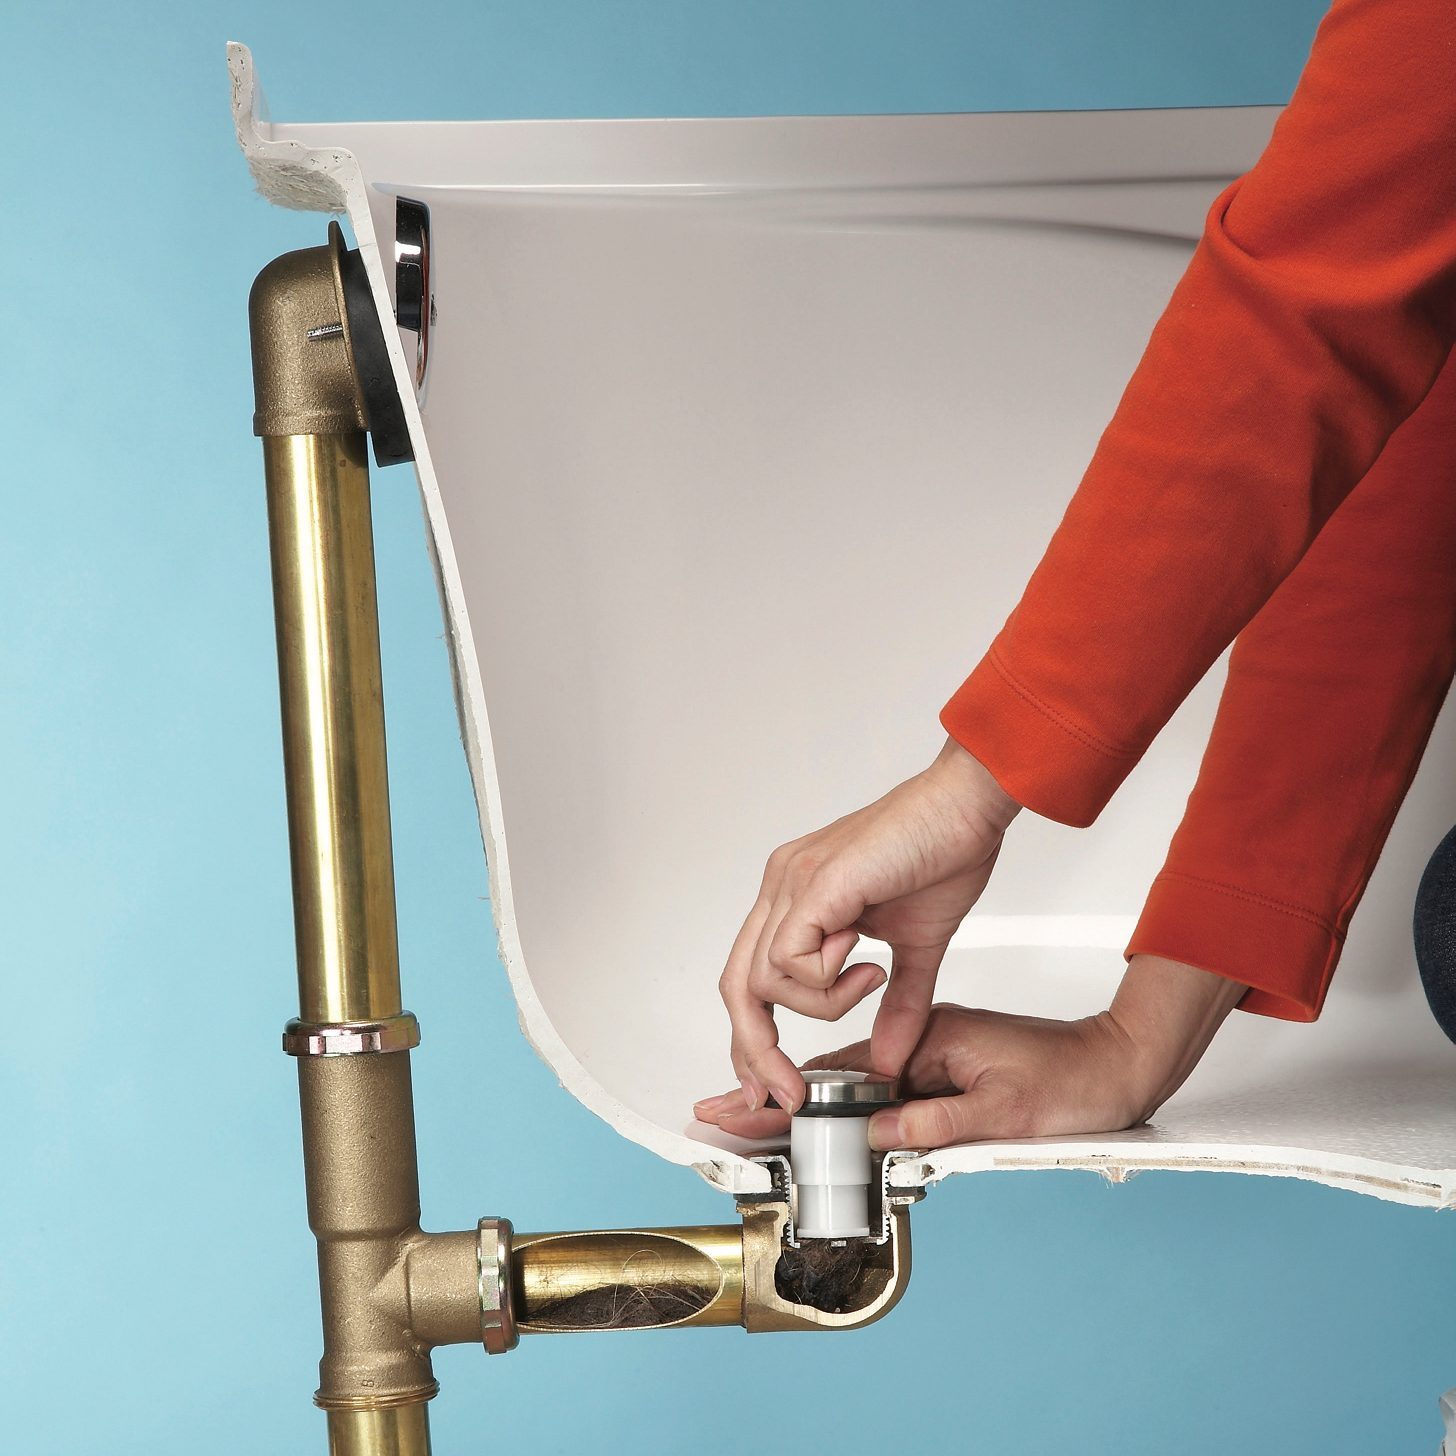 How To Unclog A Shower Drain Without Chemicals Diy Family Handyman